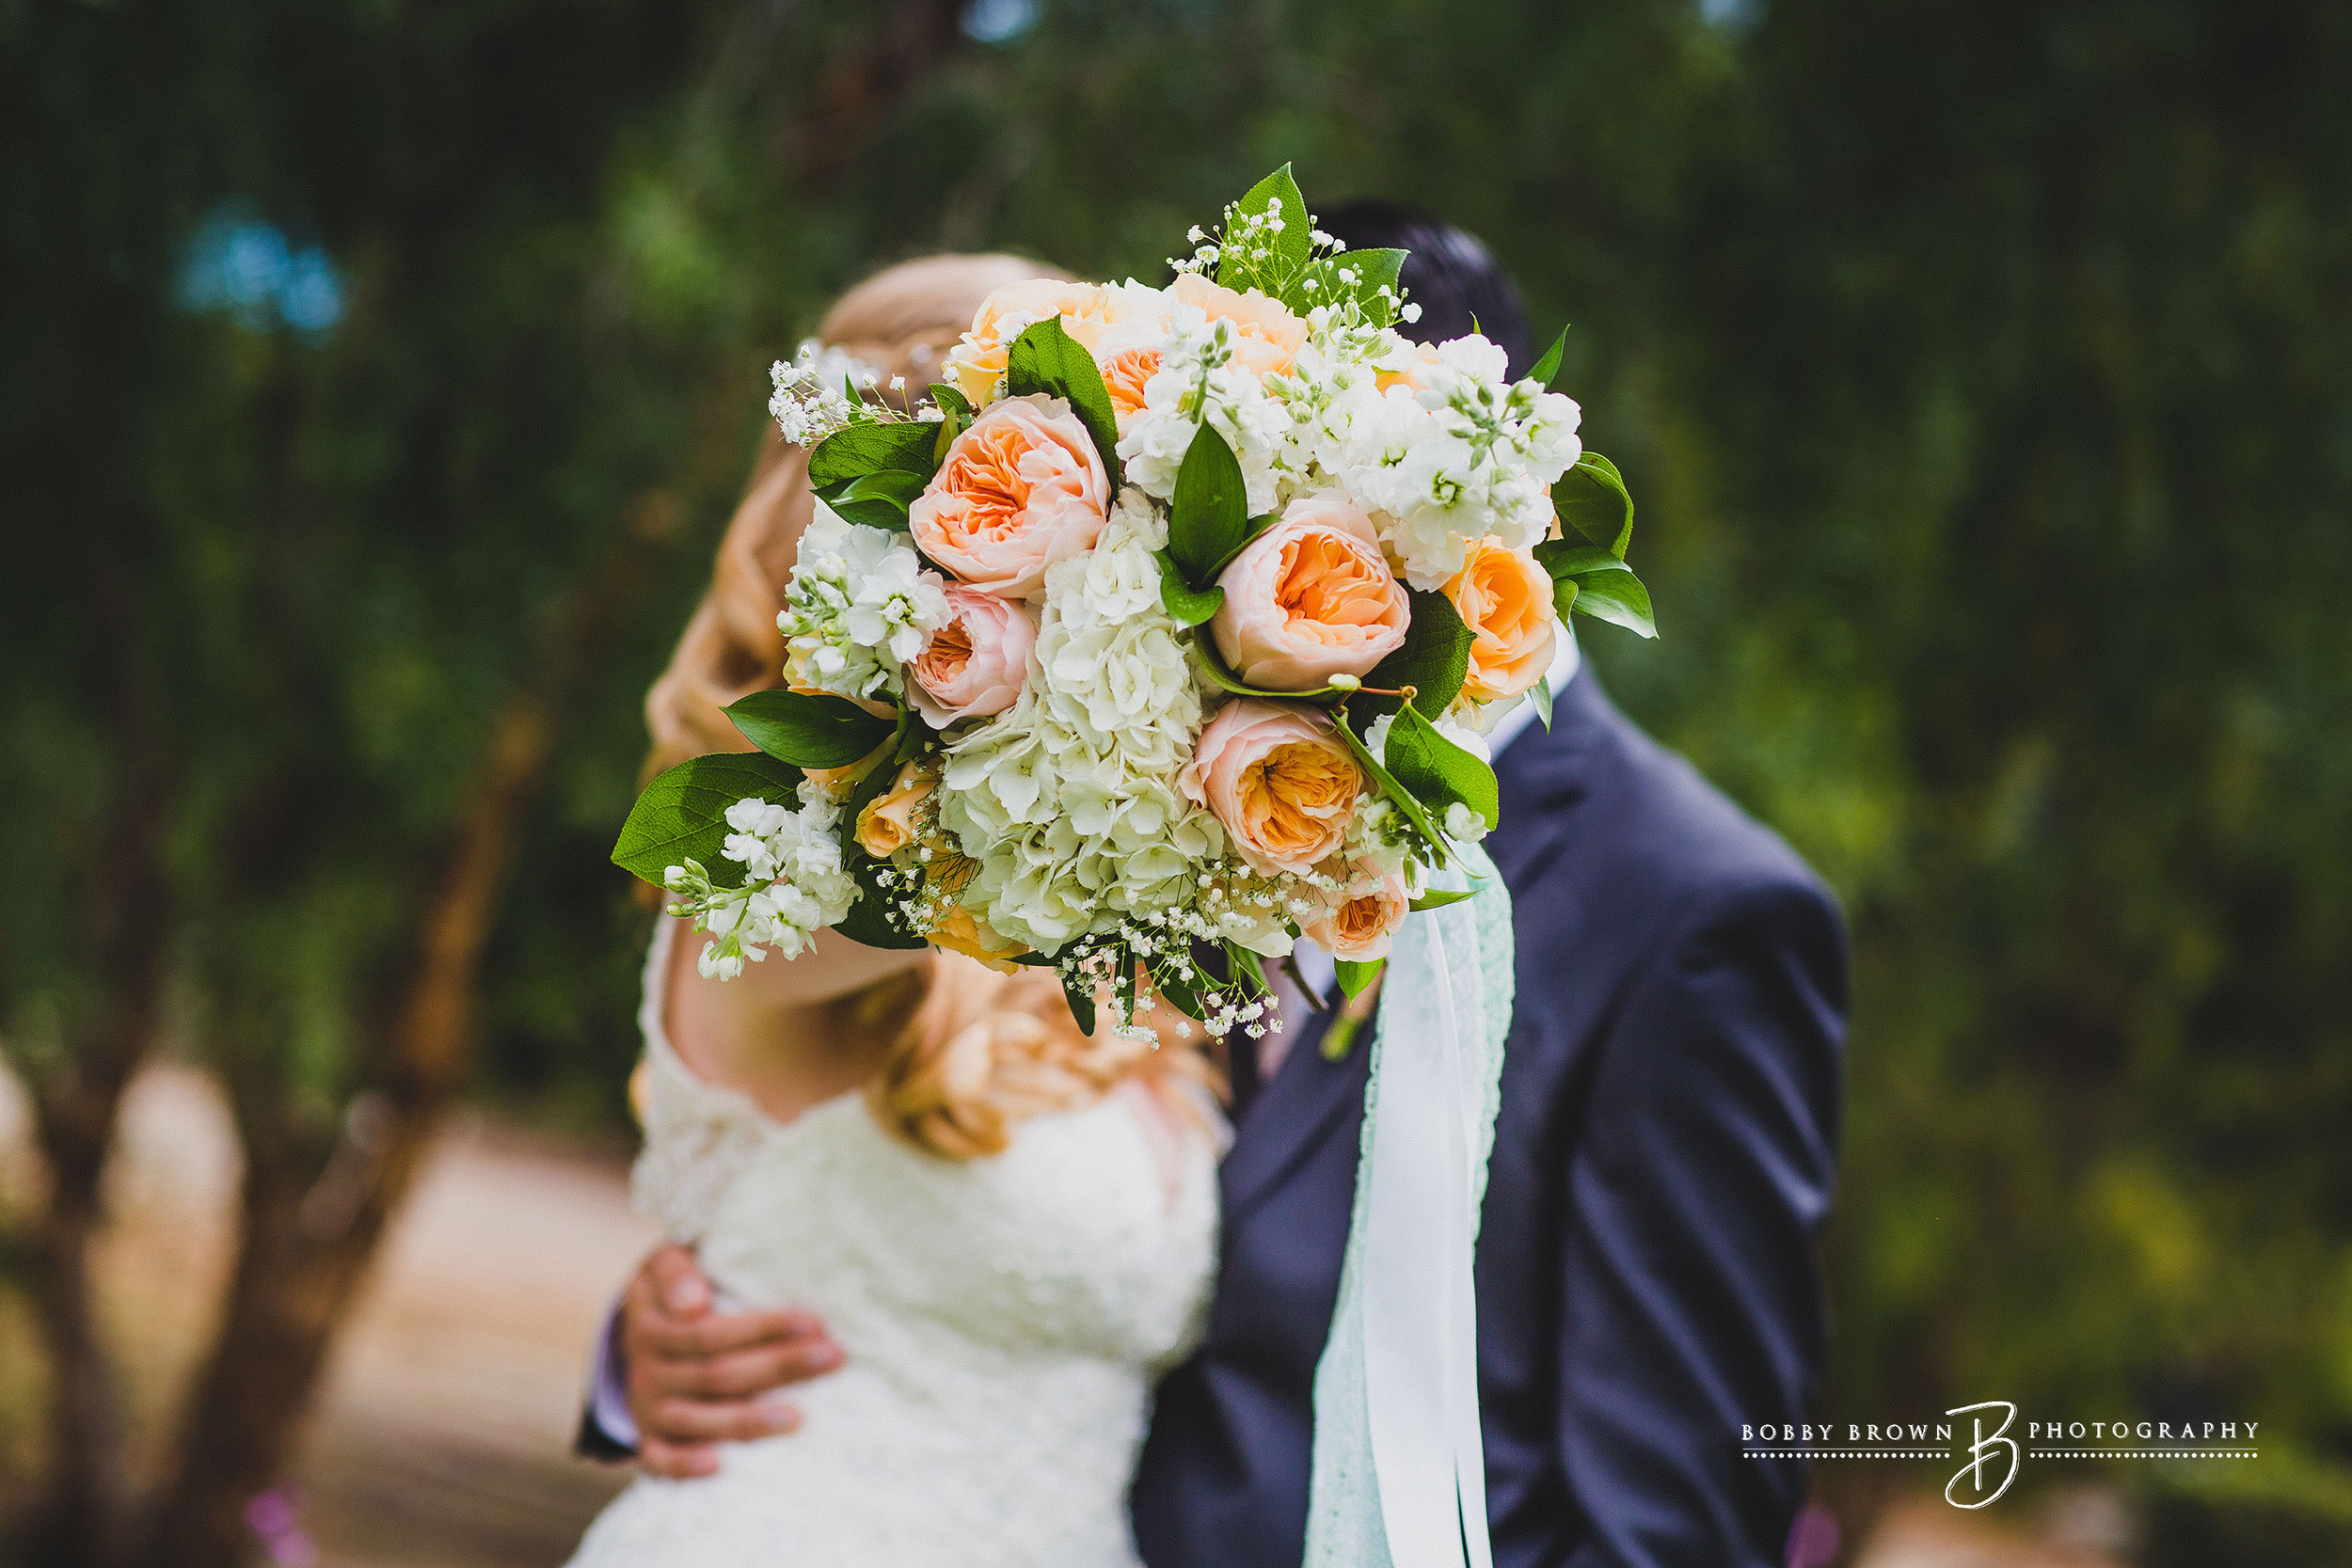 hugginswedding-278.jpg